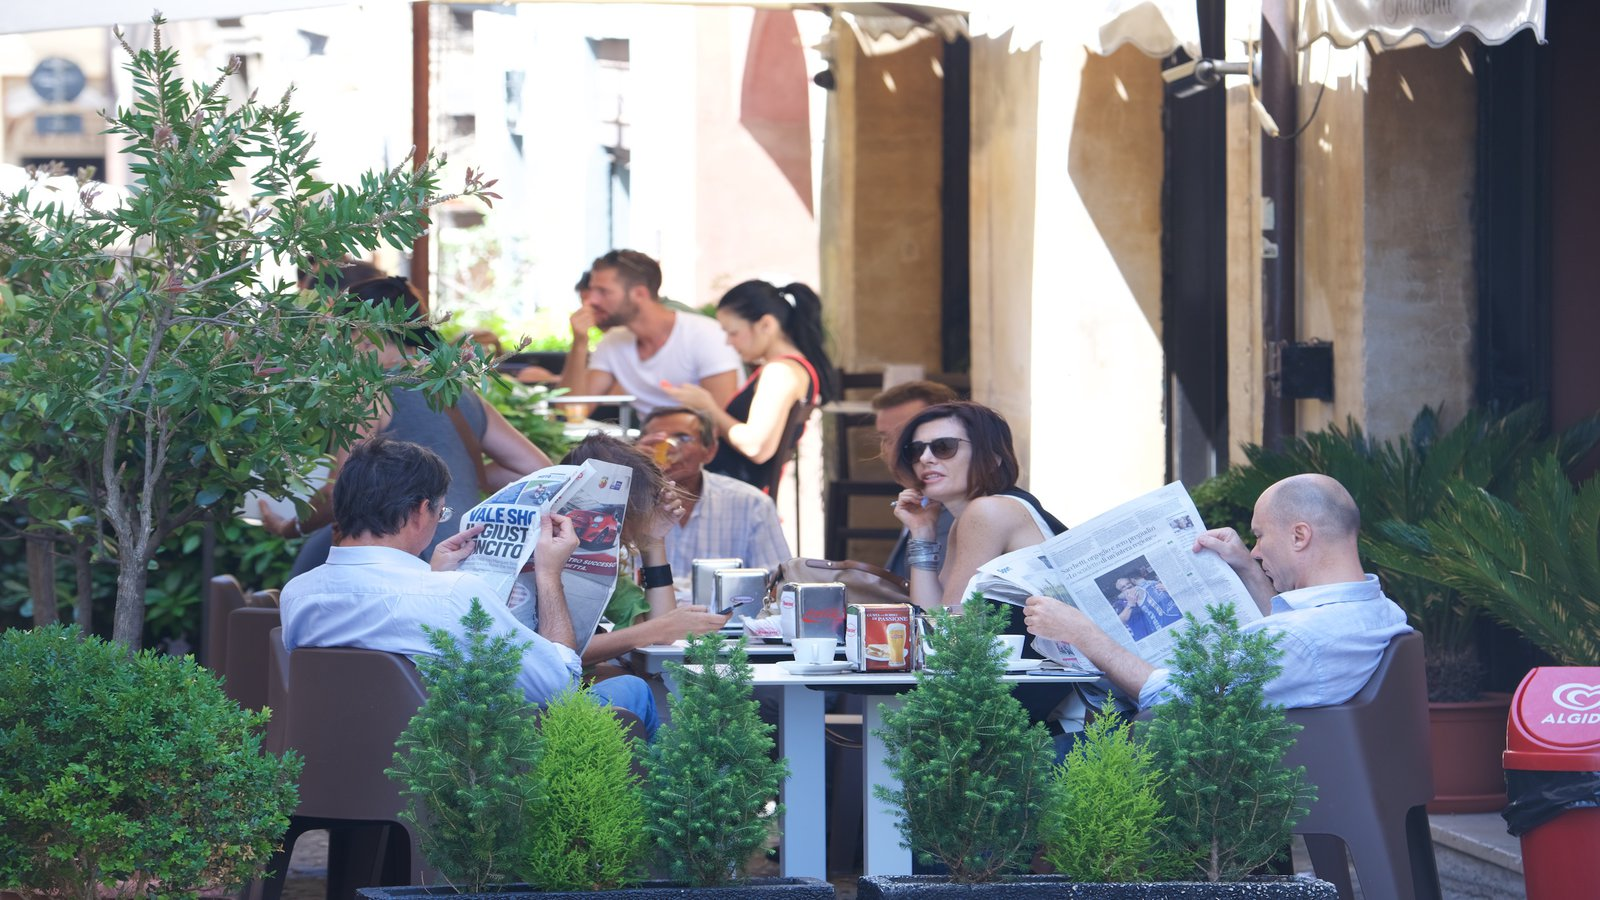 Montefalco which includes outdoor eating and cafe scenes as well as a small group of people